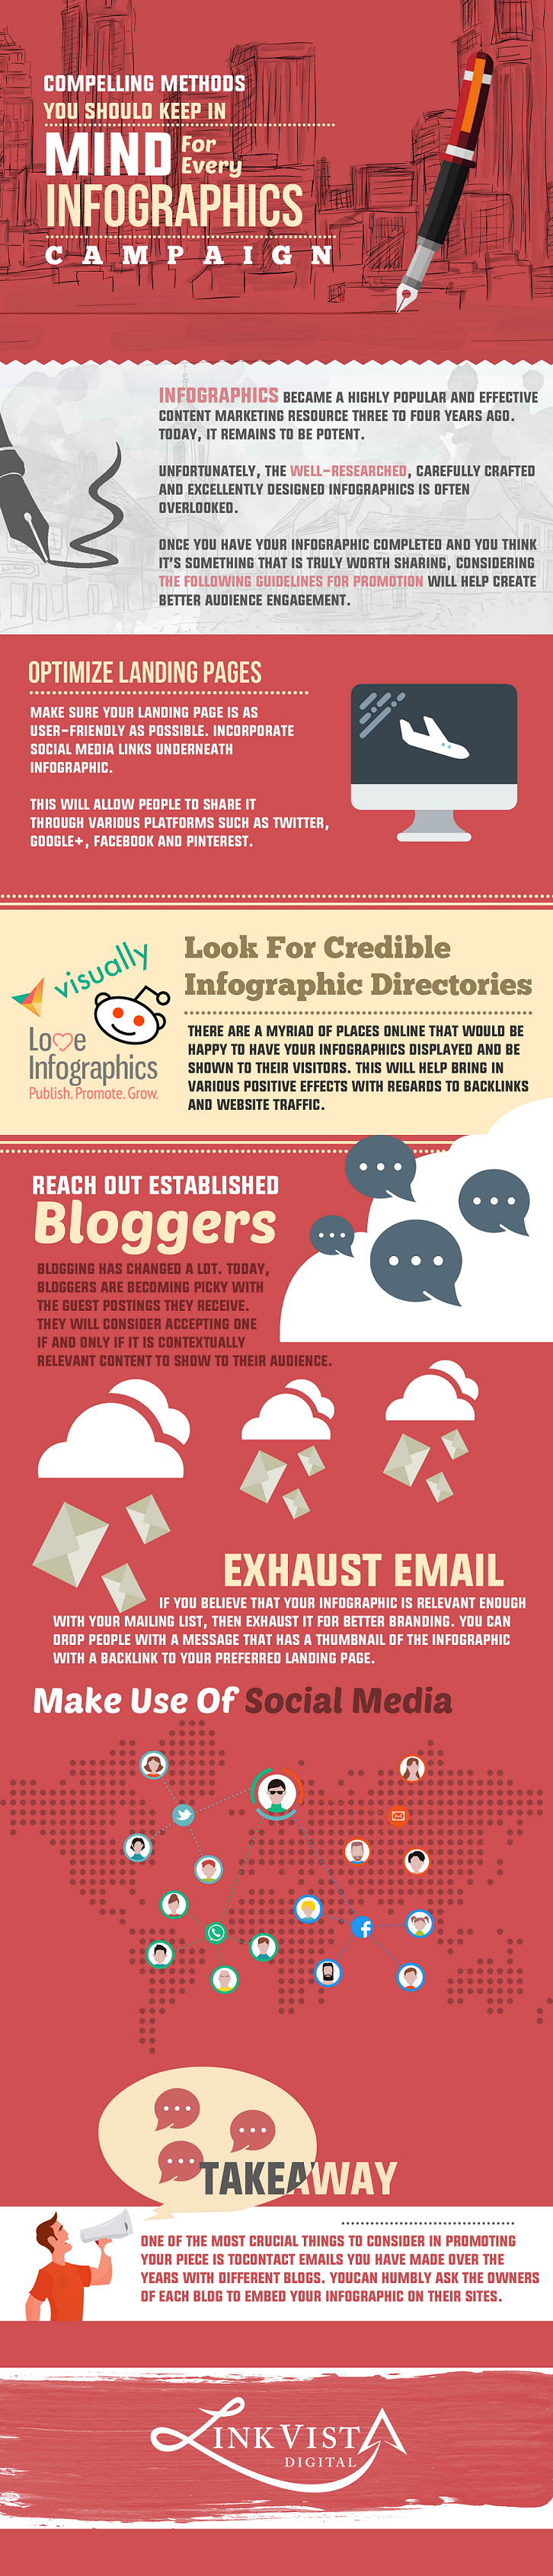 Compelling Tips for Infographic Campaigns